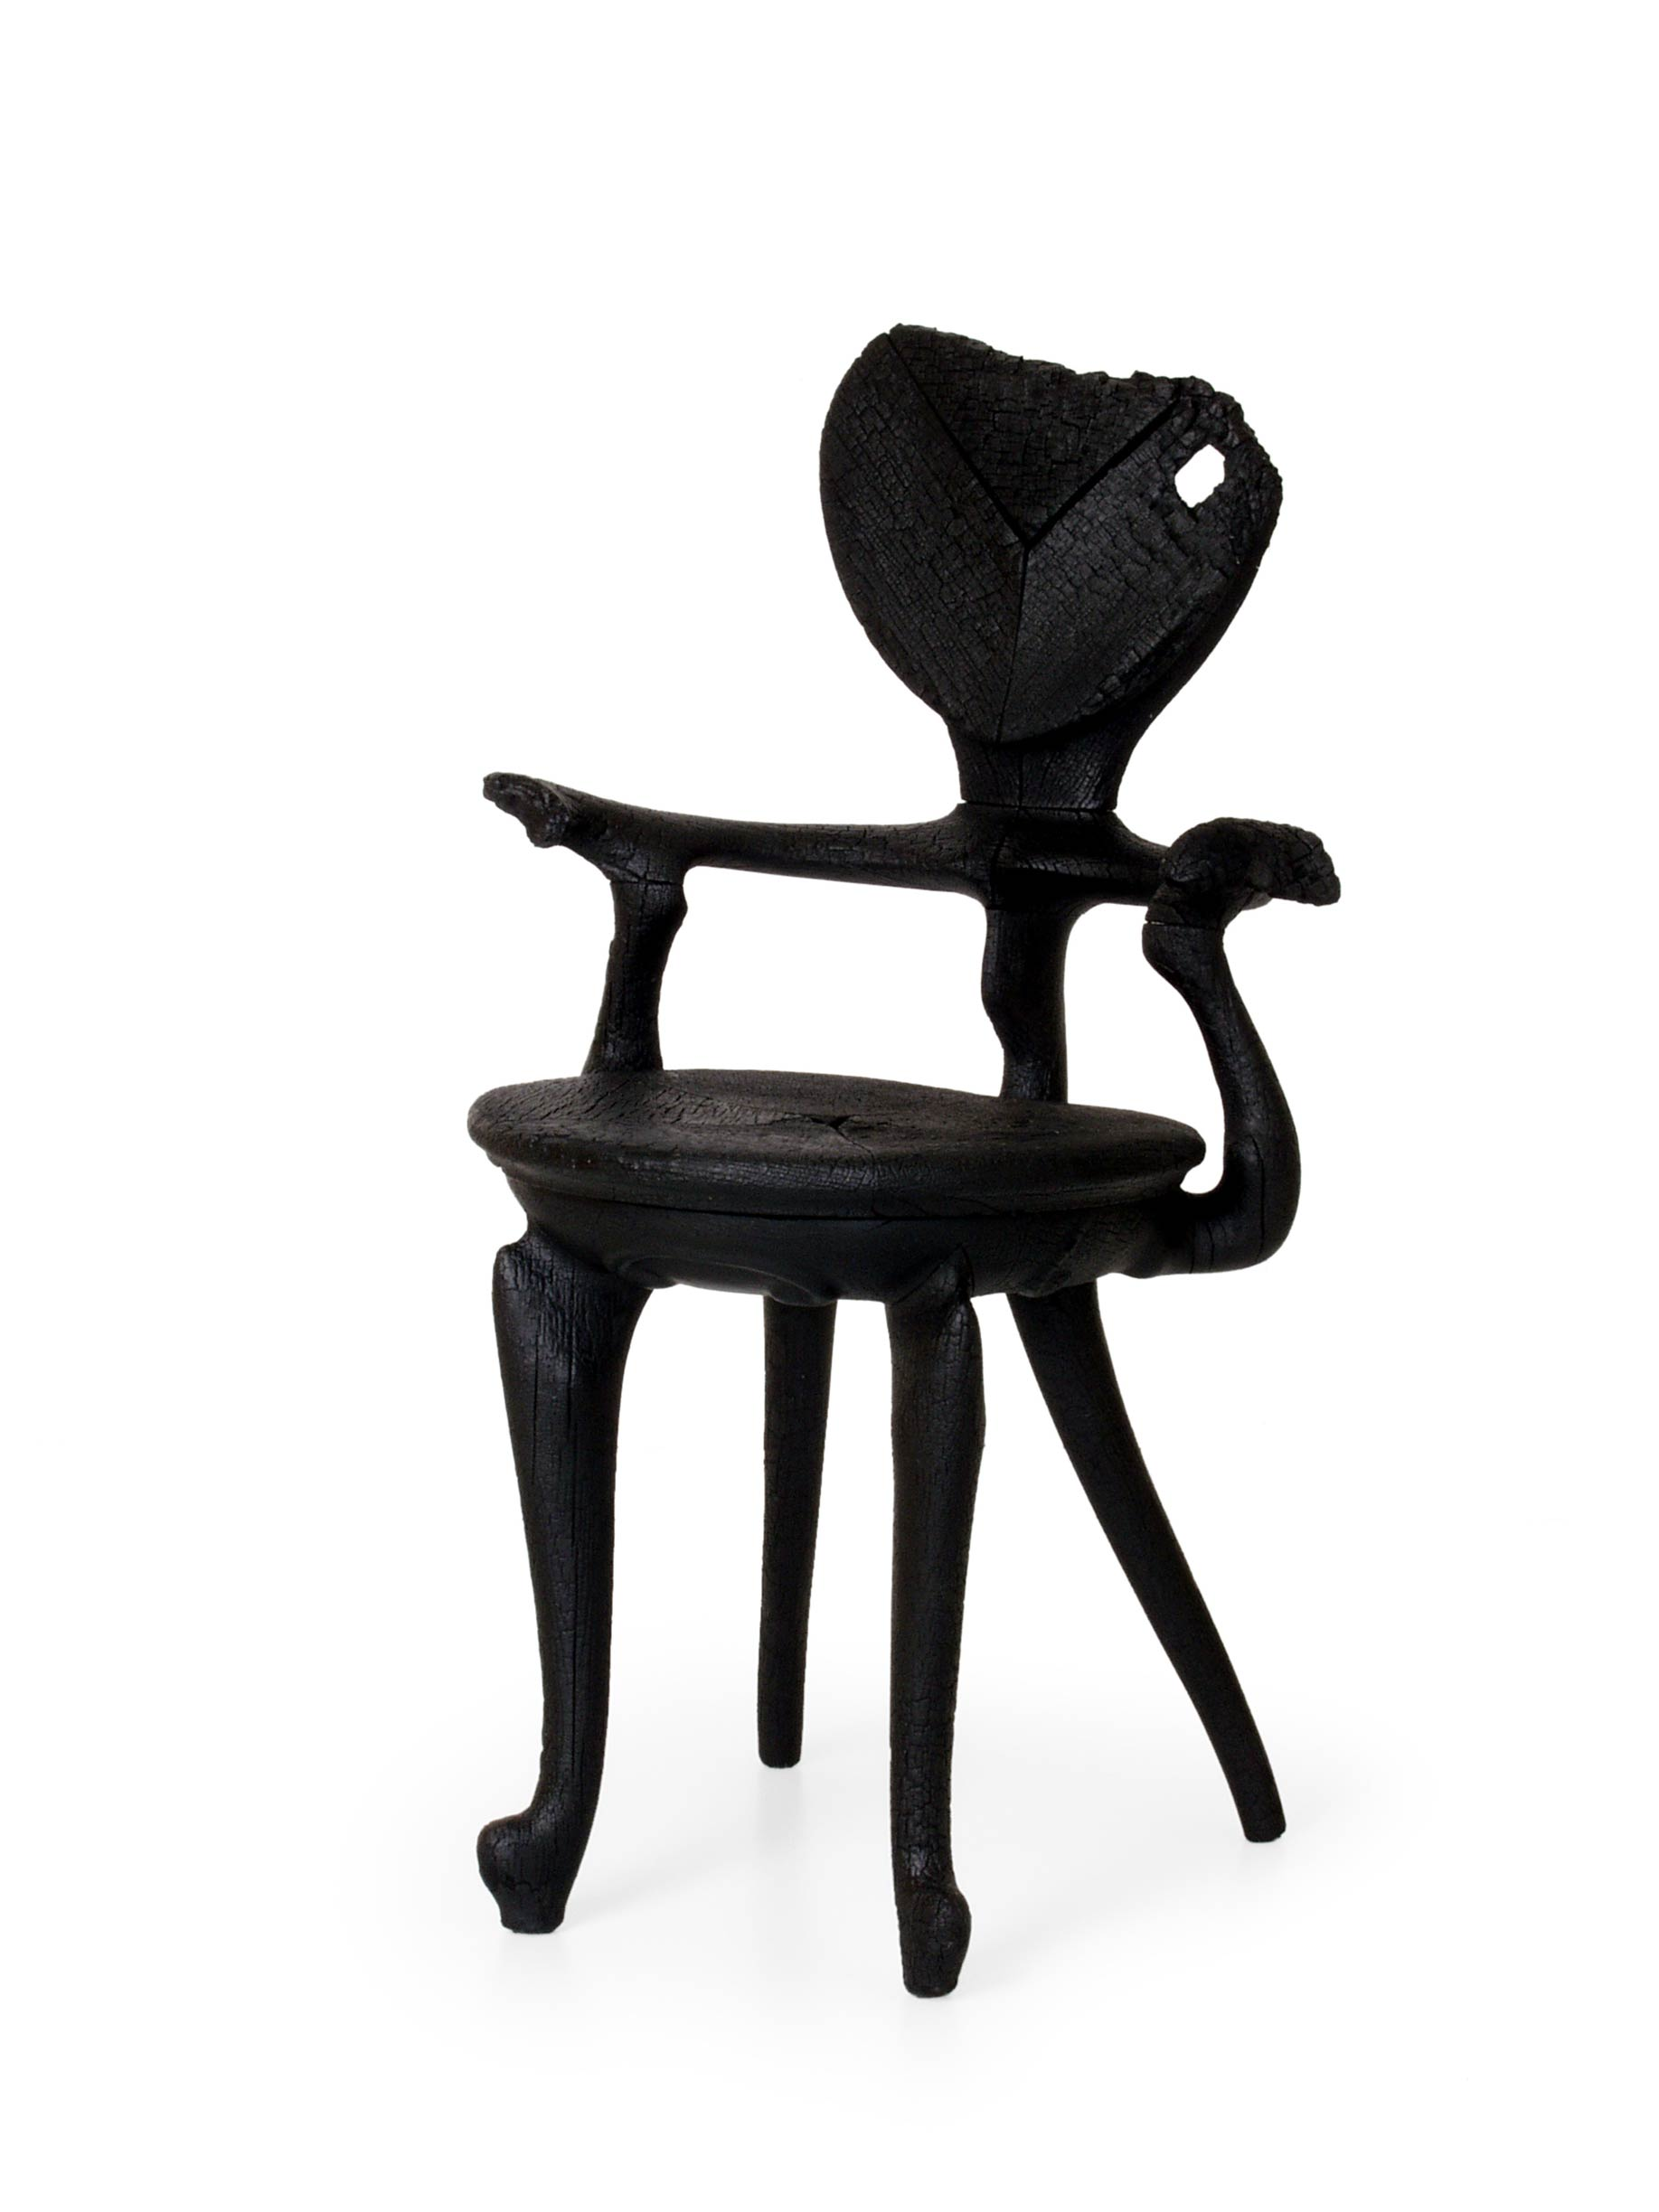 Incredible and Rebellious Contemporary Design by Maarten Baas - Where There's Smoke - Chair - maarten baas Incredible and Rebellious Contemporary Designs by Maarten Baas Incredible and Rebellious Contemporary Design by Baas Where Theres Smoke Chair